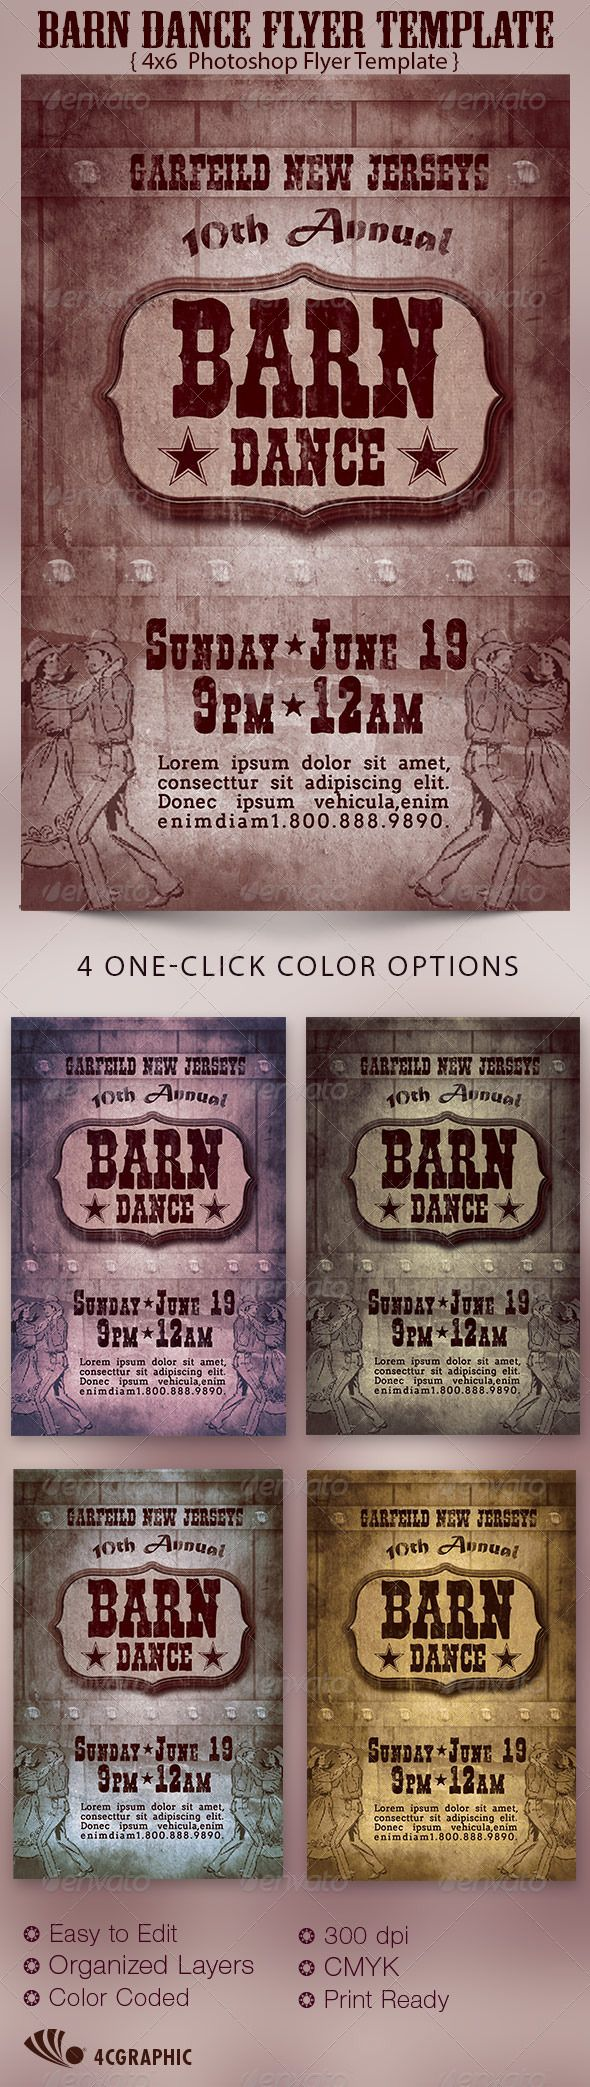 Barn Dance Flyer Template   Barn dance, Flyer template and Rodeo